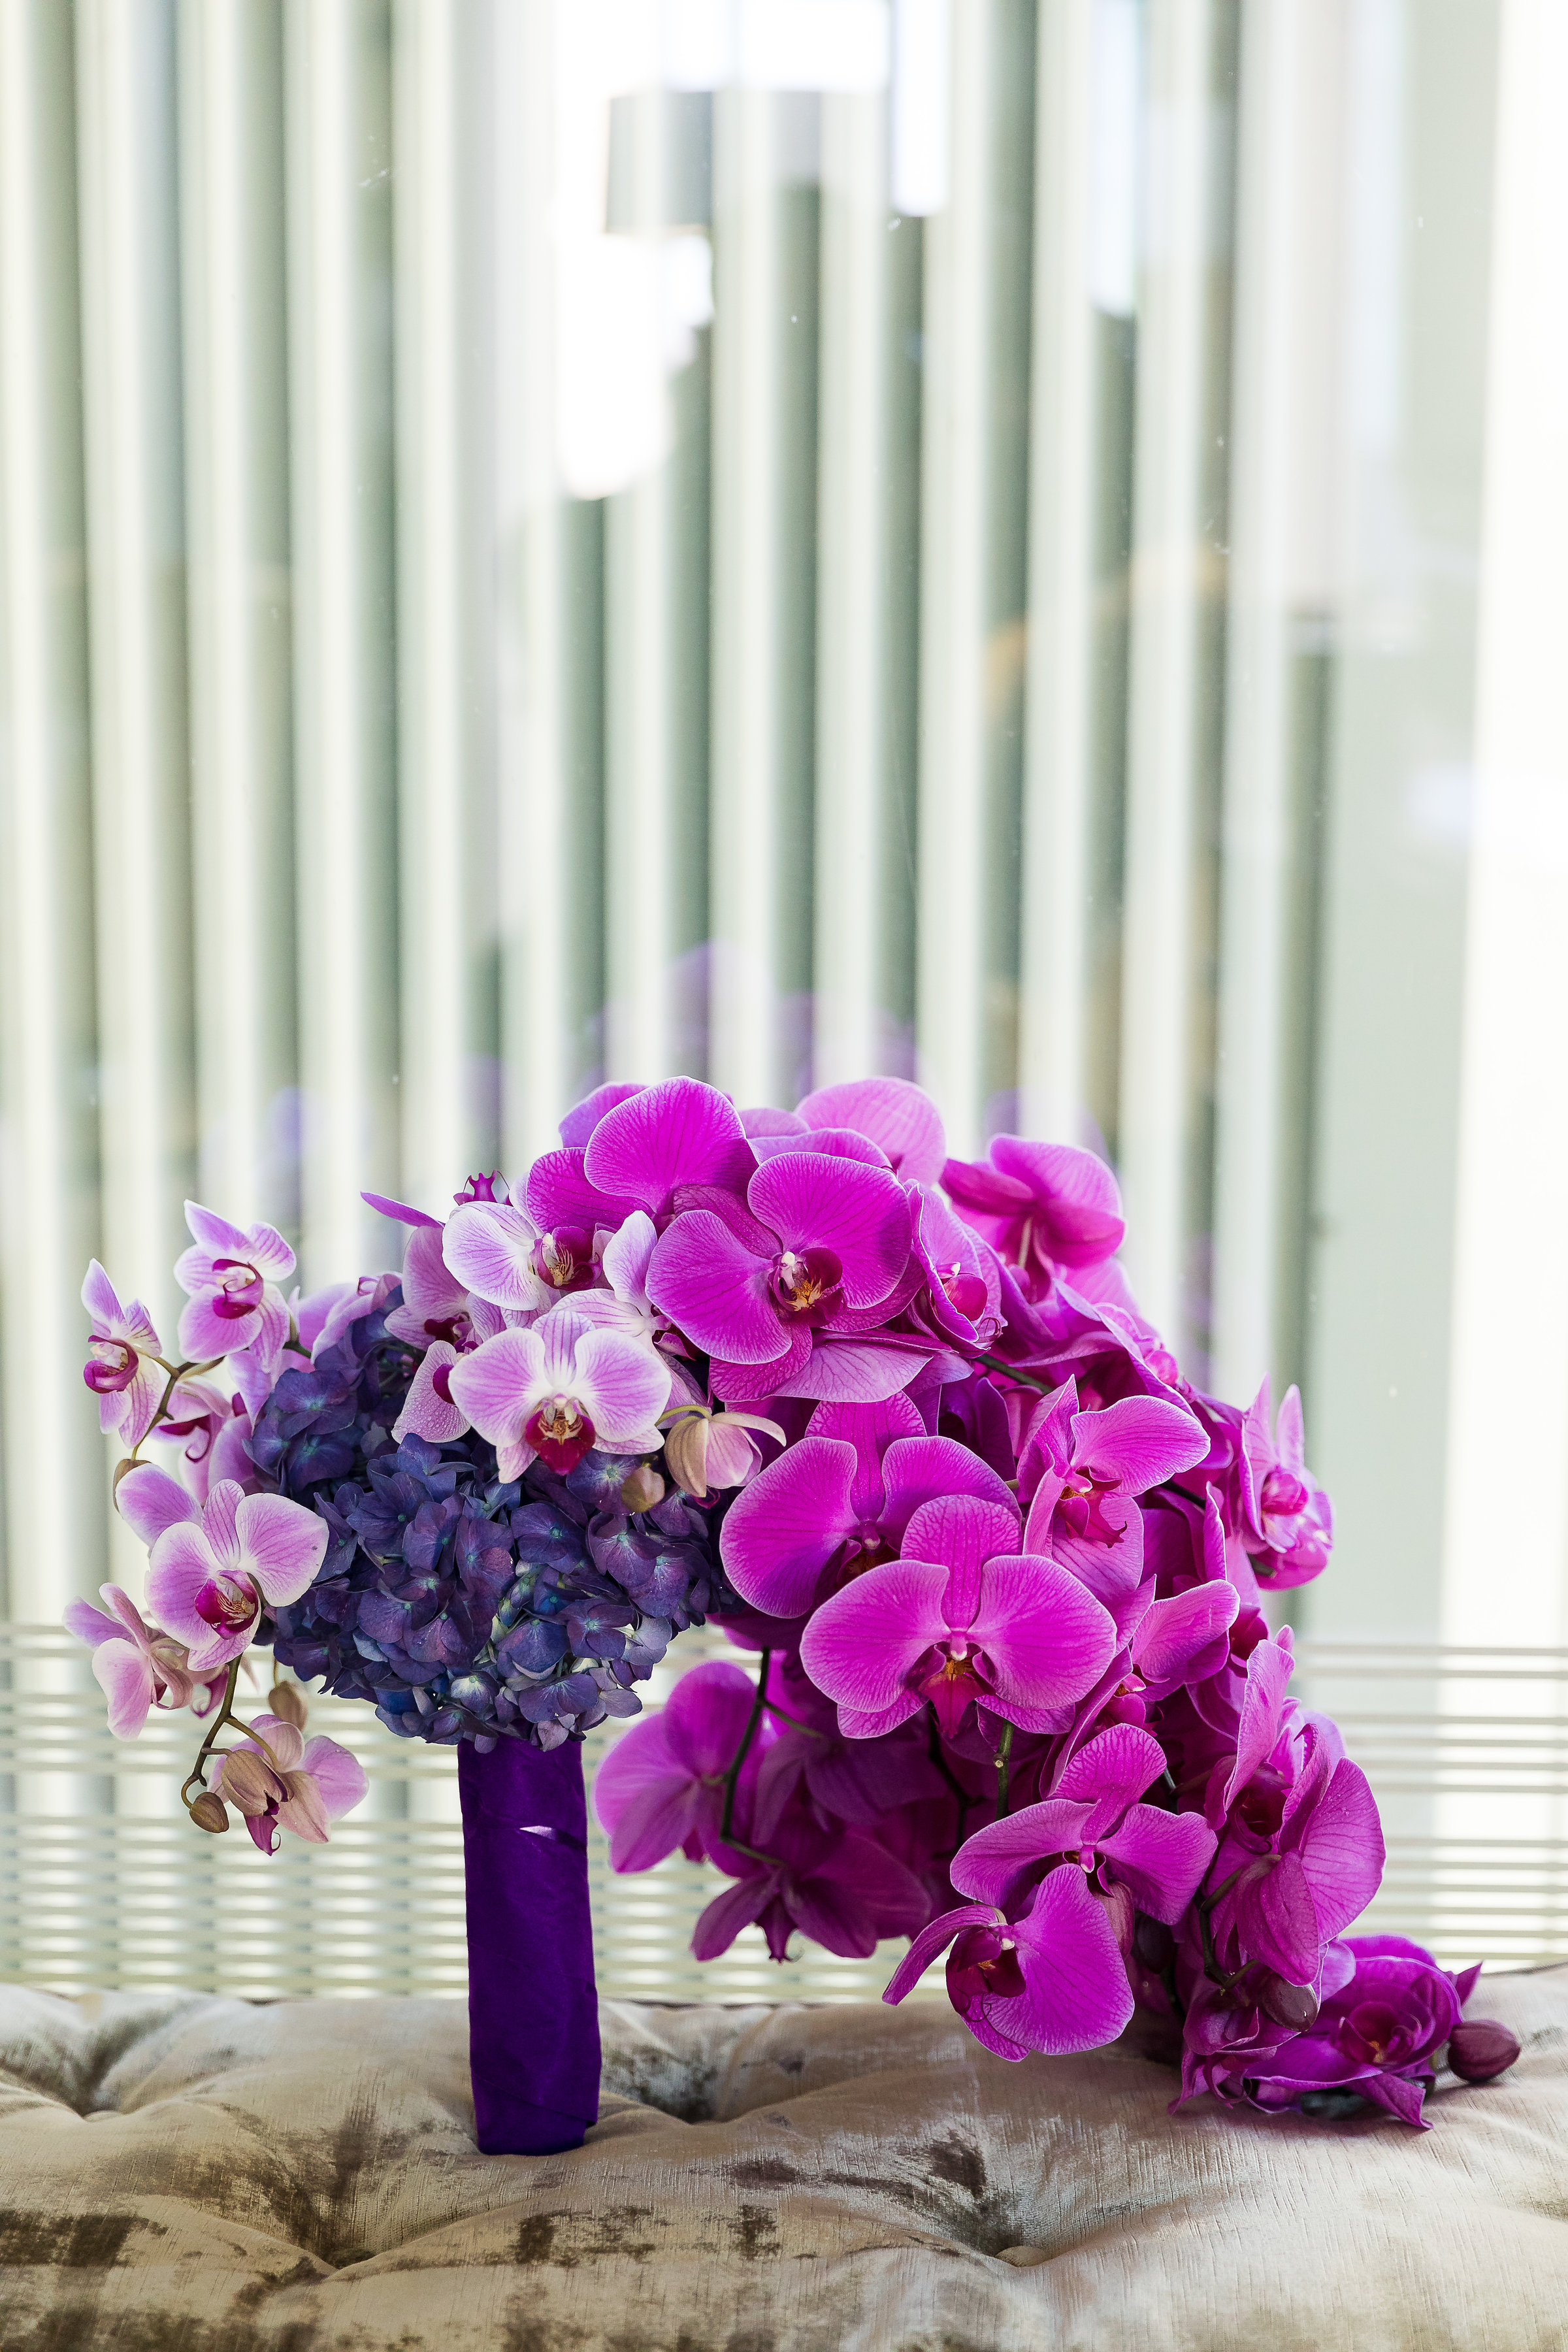 Purple and fuchsia bridal bouquet. Wedding Planner: Andrea Eppolito Events    Photography  Brian Leahy    Videography  HOO Films    Venue & Catering:  Mandarin Oriental  / Waldorf Astoria   Floral & Decor: Destinations by Design    Lighting: LED Unplugged    Music:  DJ Breeze II    Hair & Make Up: Amelia C & Co